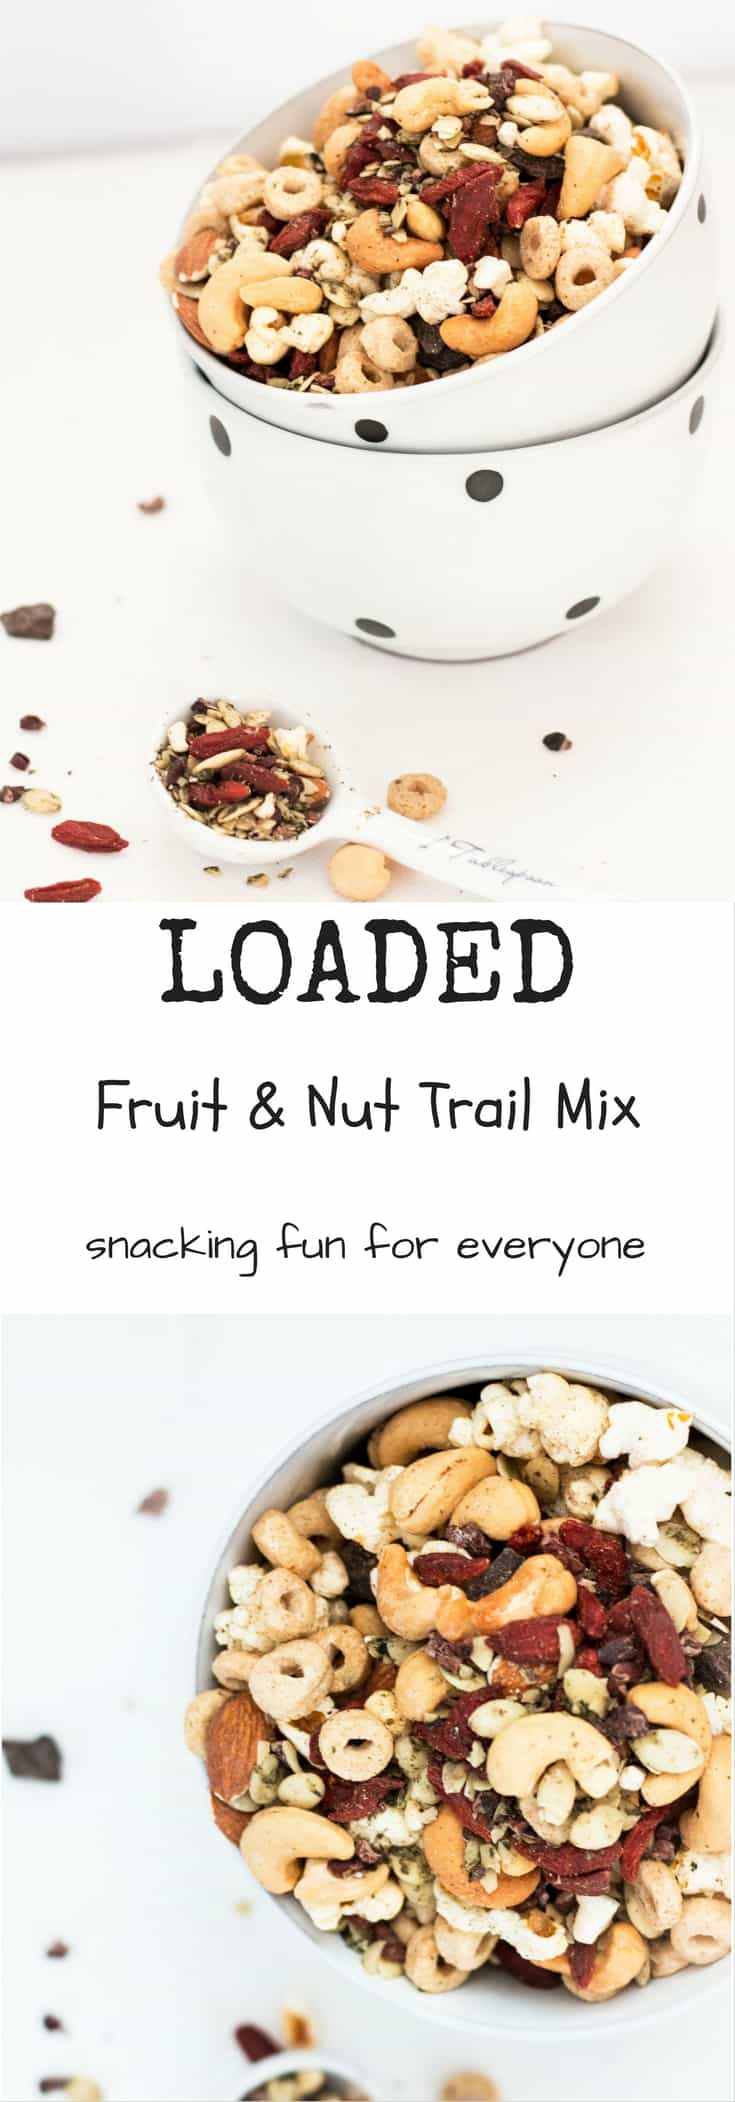 Loaded Fruit and Nut Mix with Dark Chocolate Studs. Make a fun and healthy snack for the whole family.